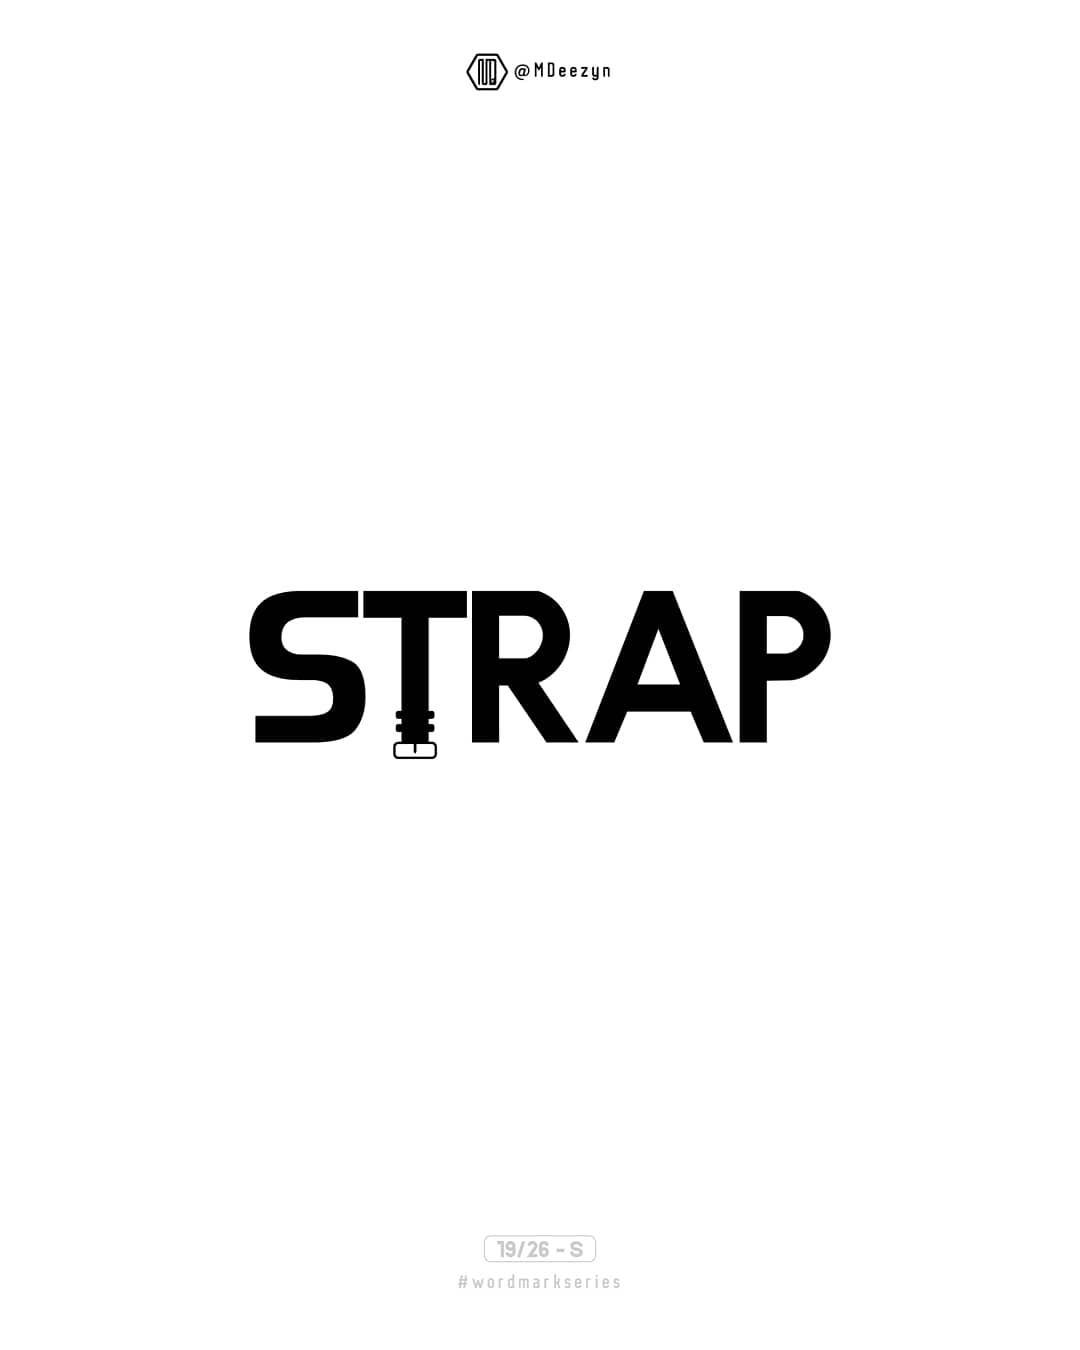 S Strap Wordmarkseries 19 26 Learning Time Strap A Strip Of Leather Cloth Or Other Flexible Material Used To Faste With Images Logo Branding Learning Time